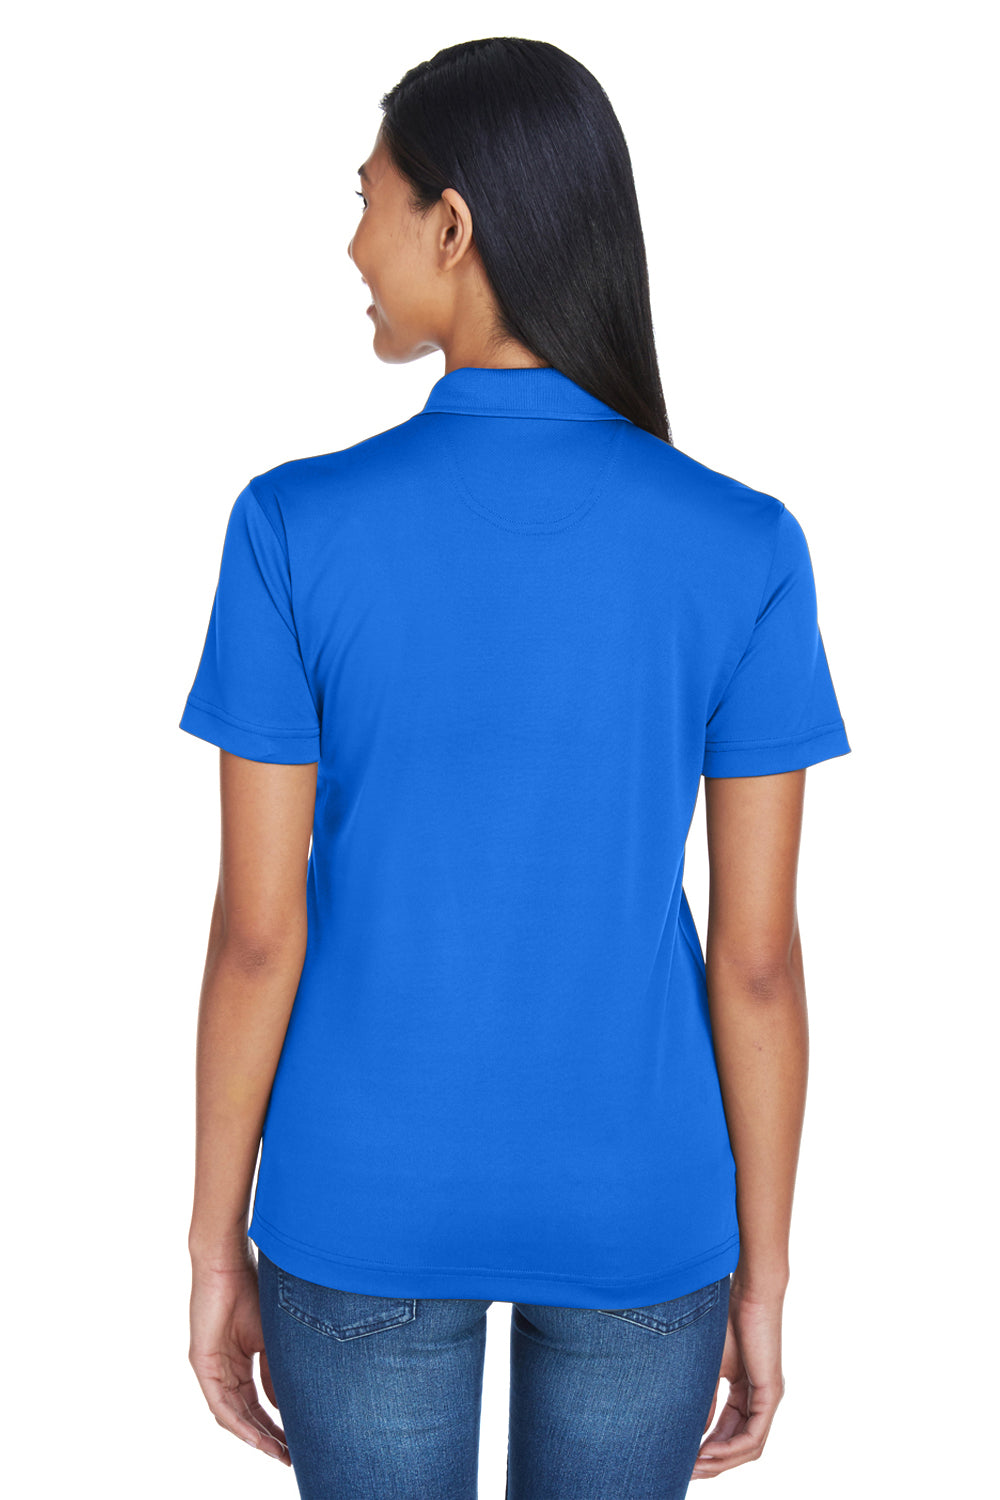 UltraClub 8404 Womens Cool & Dry Moisture Wicking Short Sleeve Polo Shirt Royal Blue Back